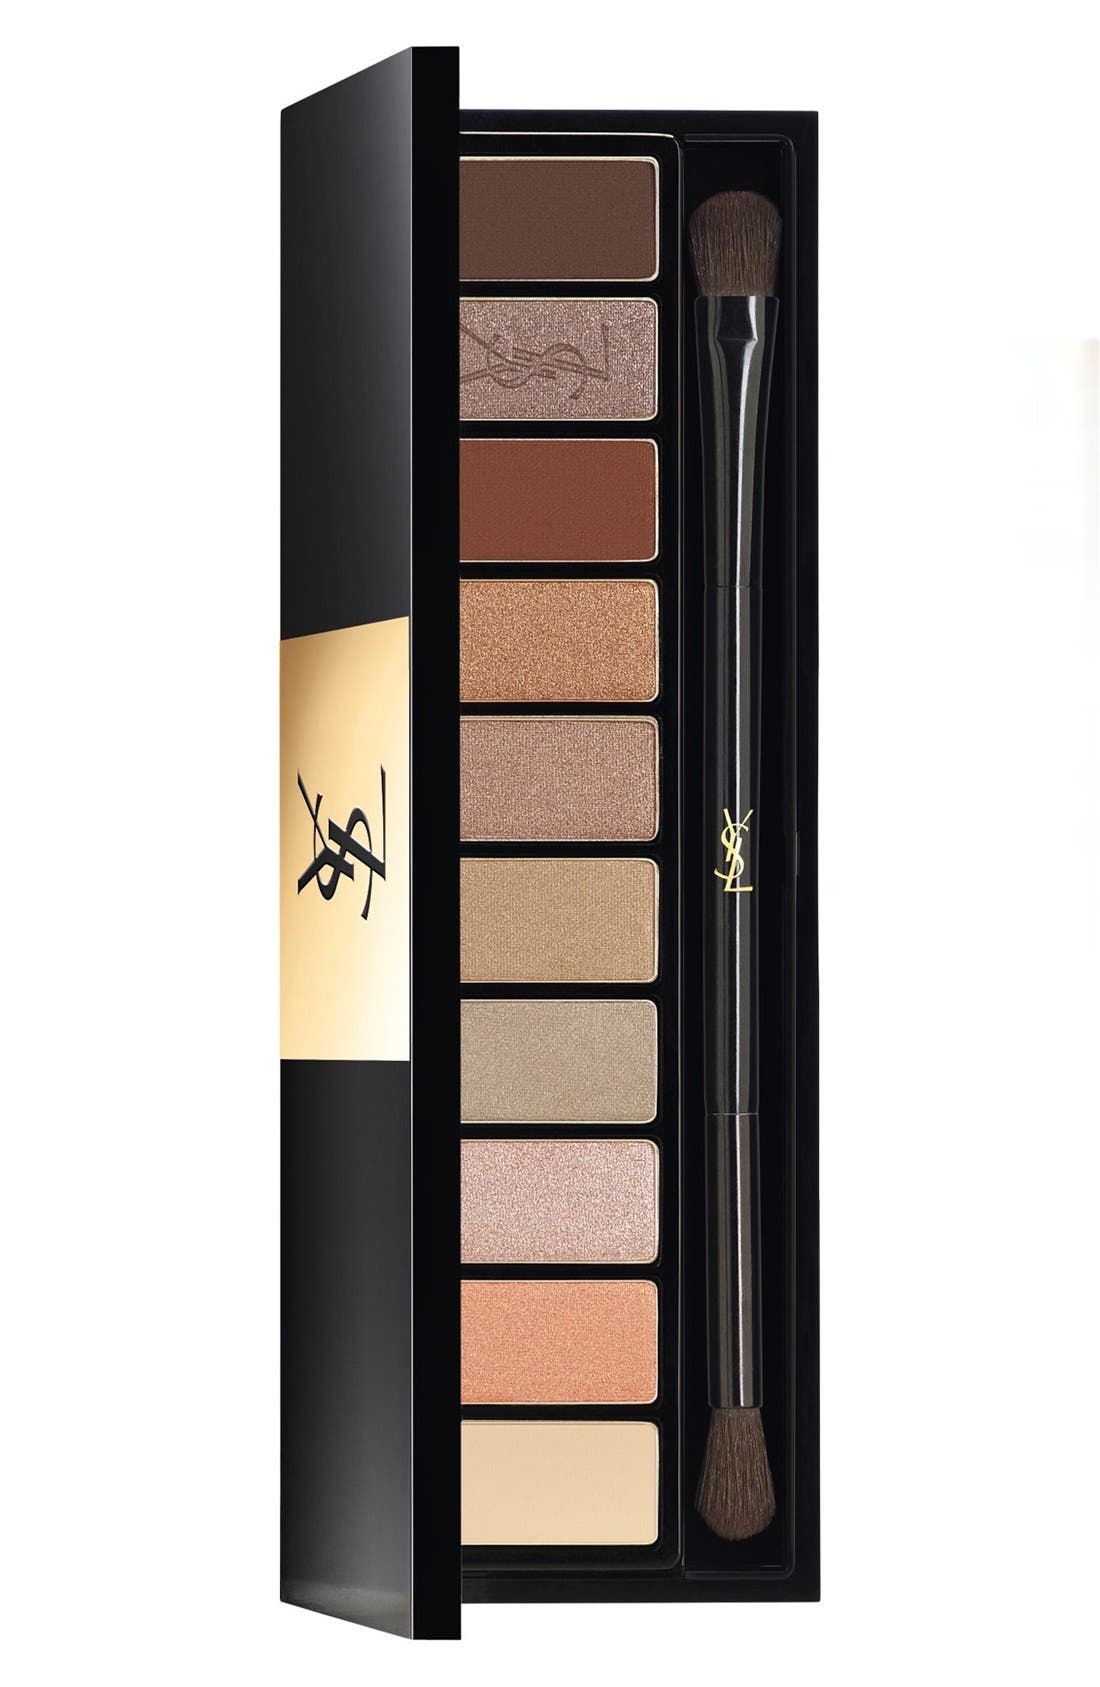 'Nude' Couture Variation Ten-Color Expert Eye Palette,                             Main thumbnail 1, color,                             01 NU